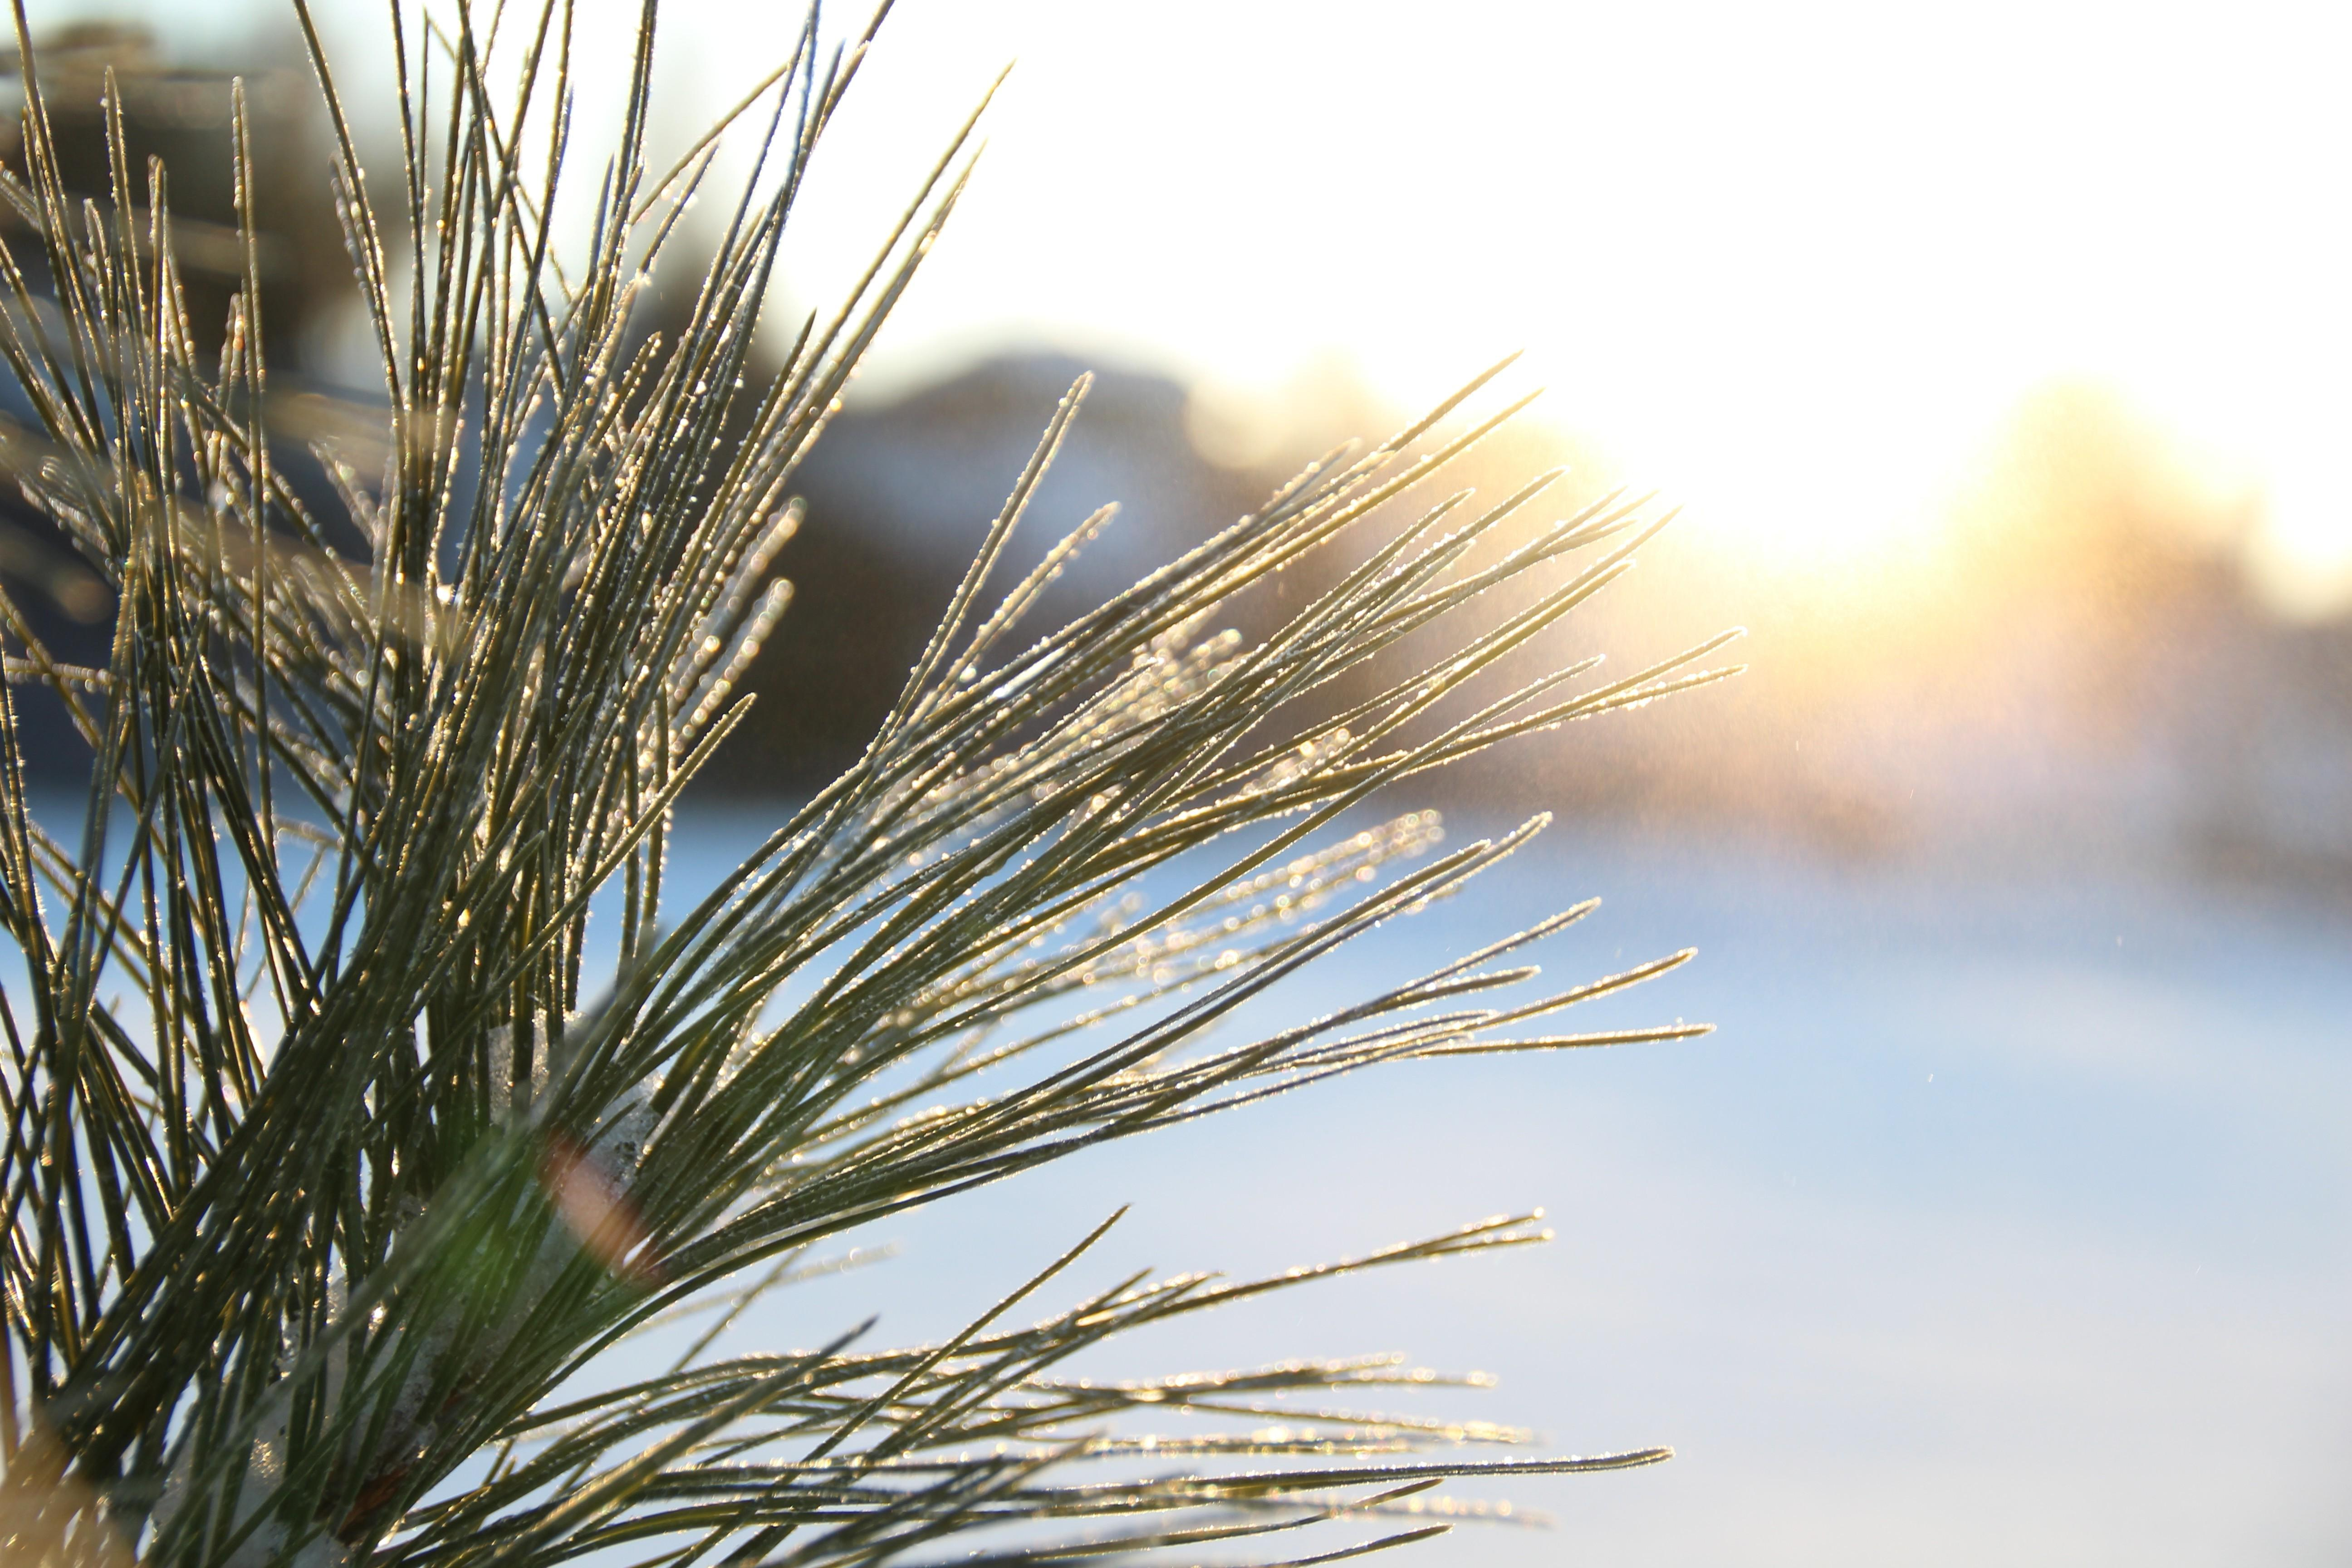 winter, Sunlight, Macro, Depth Of Field, Nature, Grass, Lens